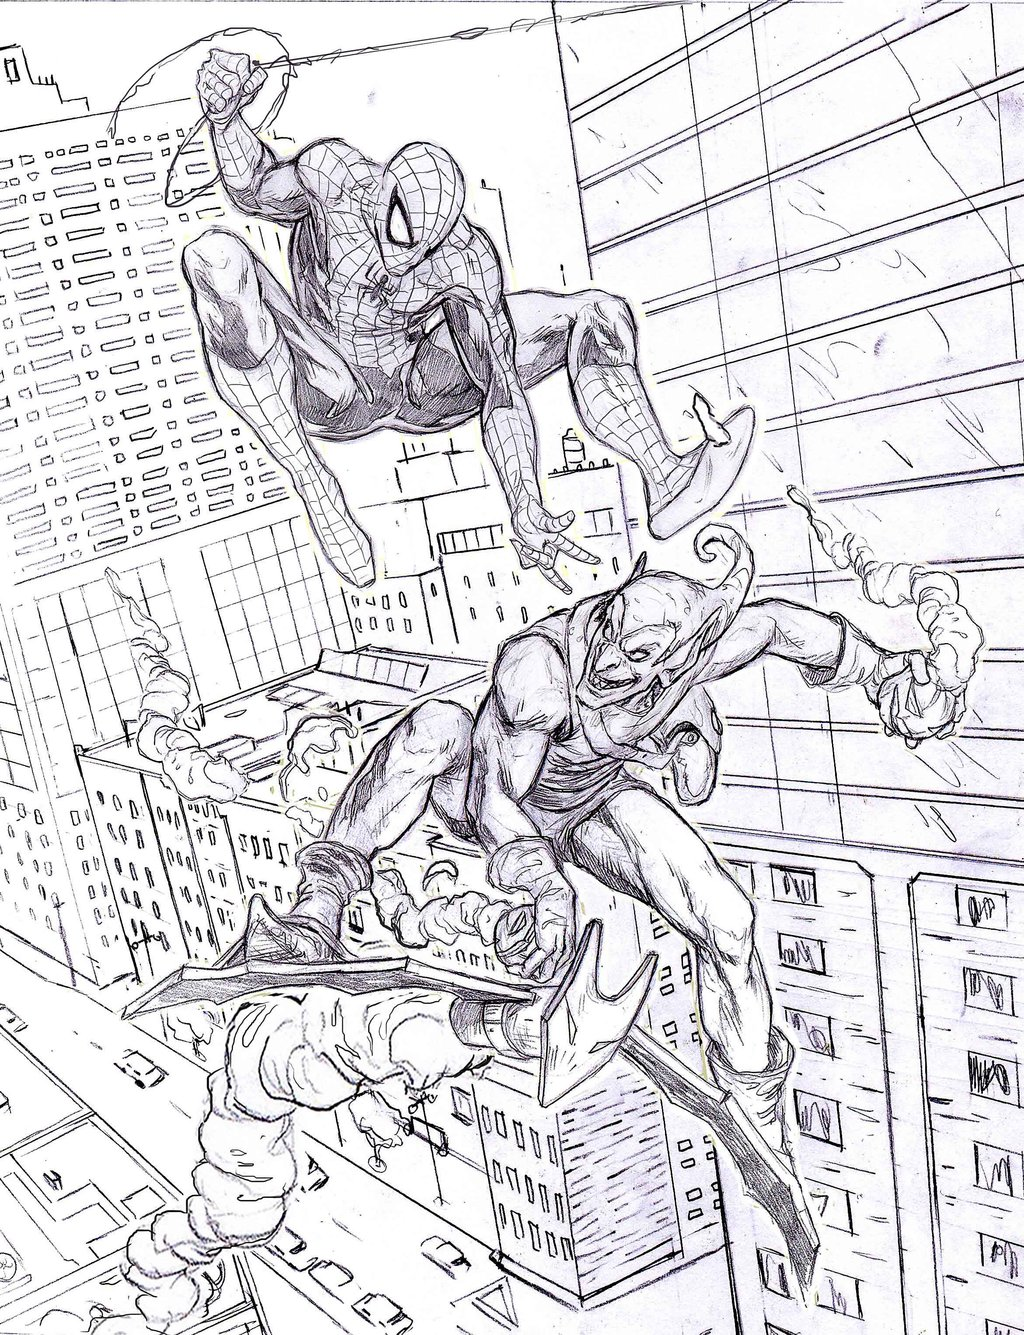 Spiderman Fighting Green Goblin Coloring Pages - Master Coloring Pages